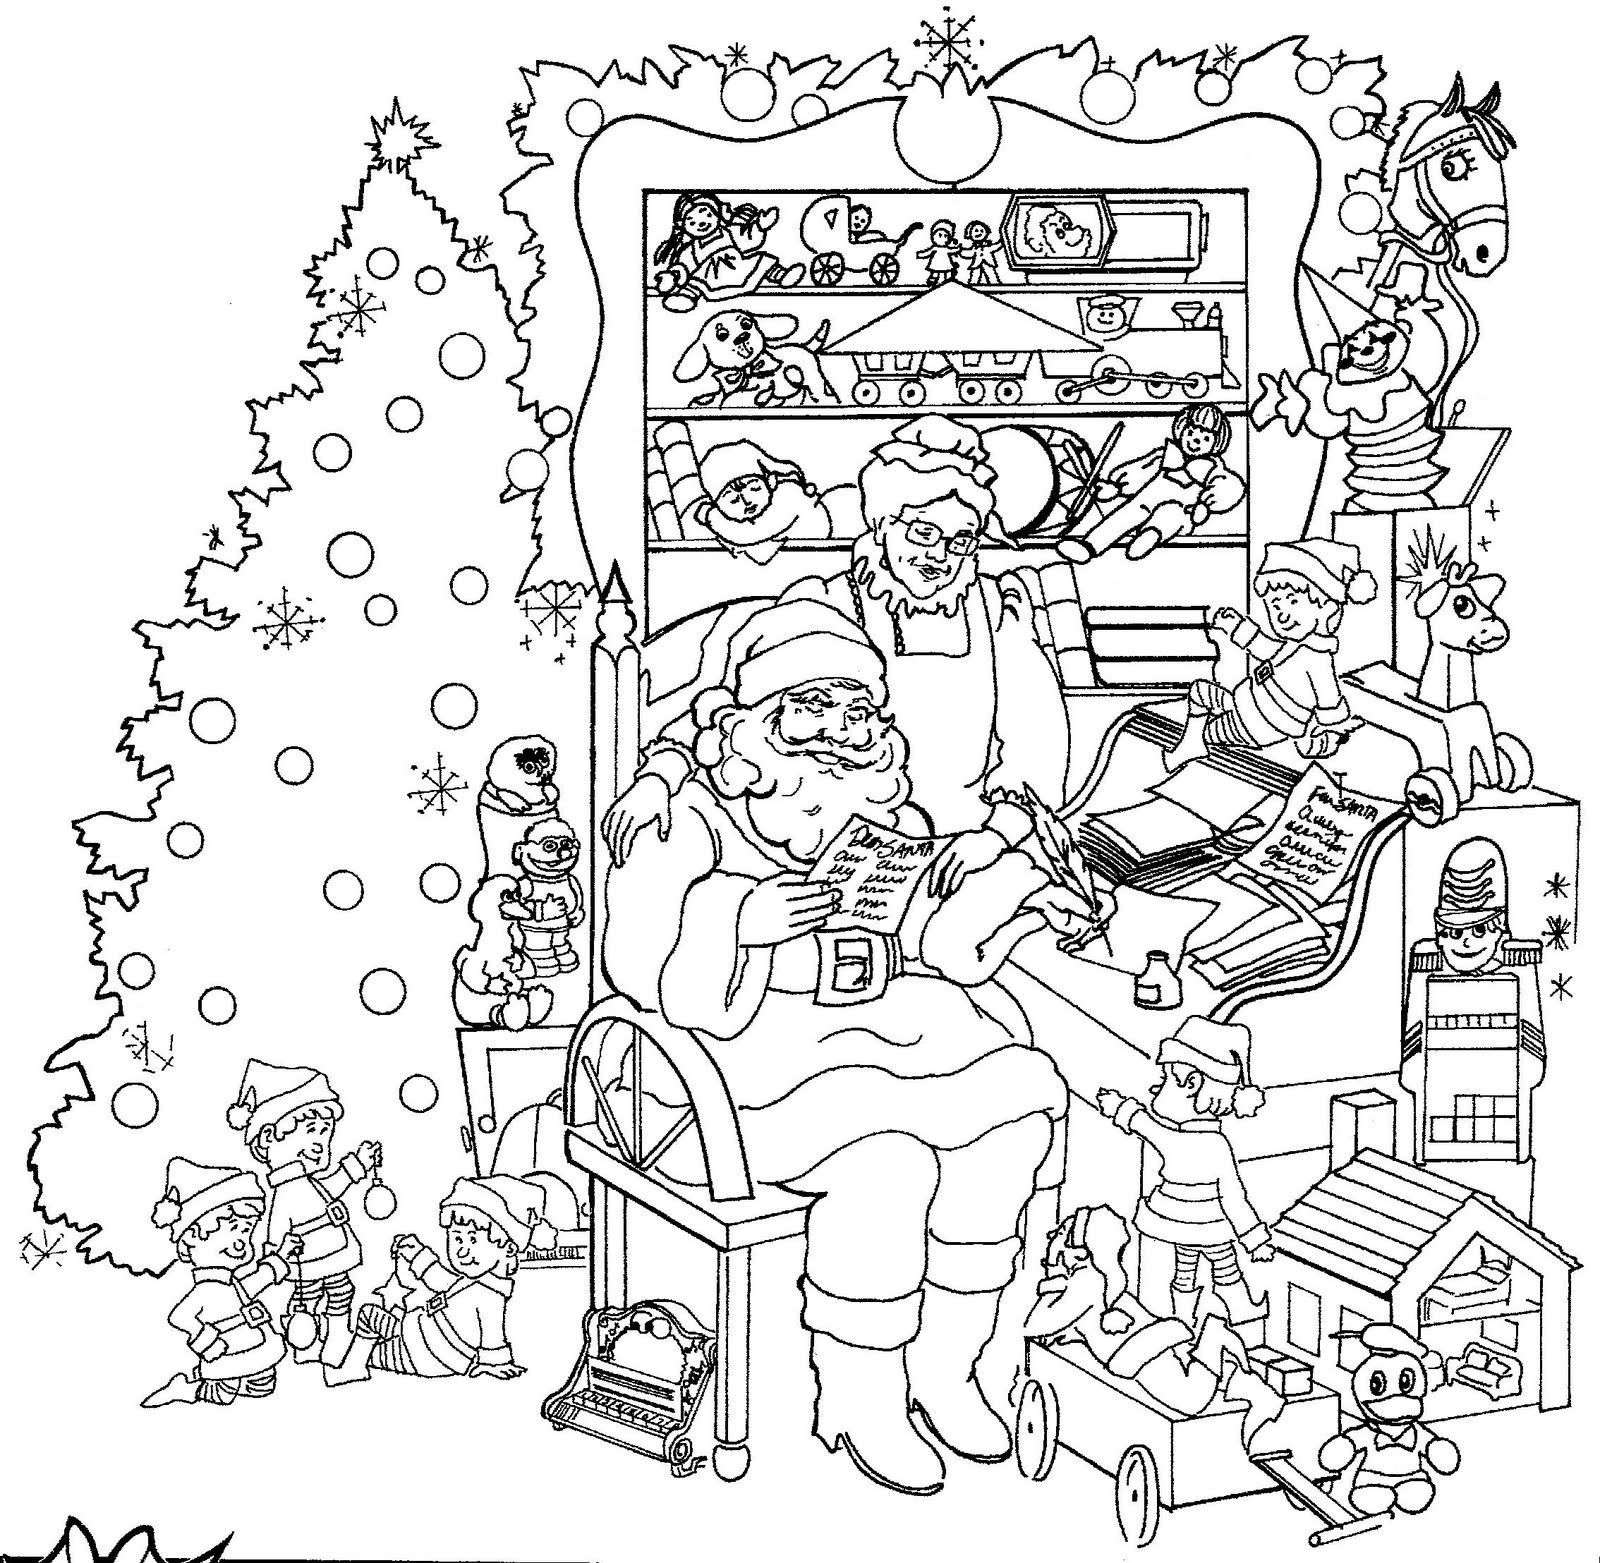 Coloring pages advanced christmas coloring pages 1000 images about christmas 2015 on pinterest ornaments stockings and